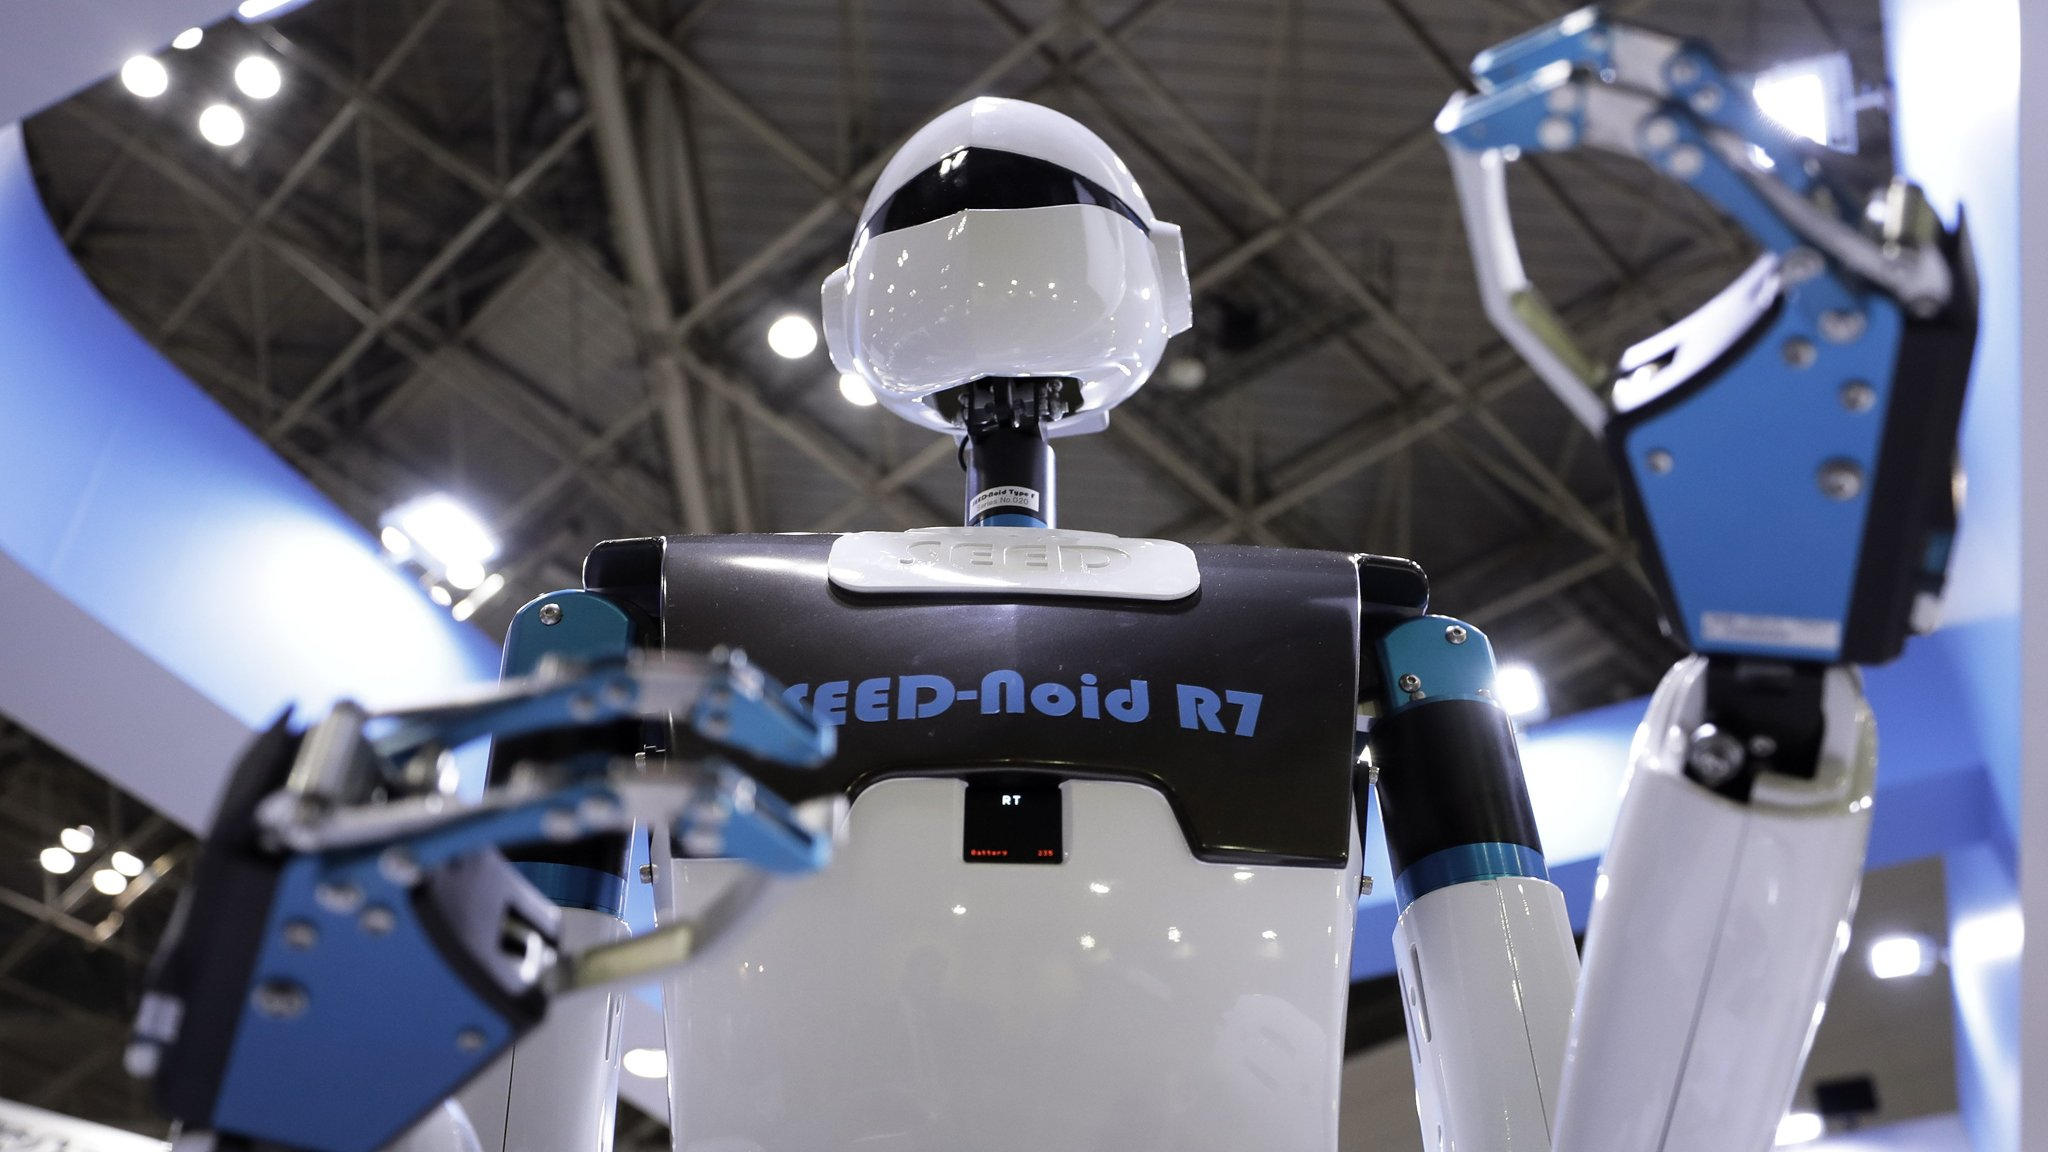 Robots must up their game to solve real problems